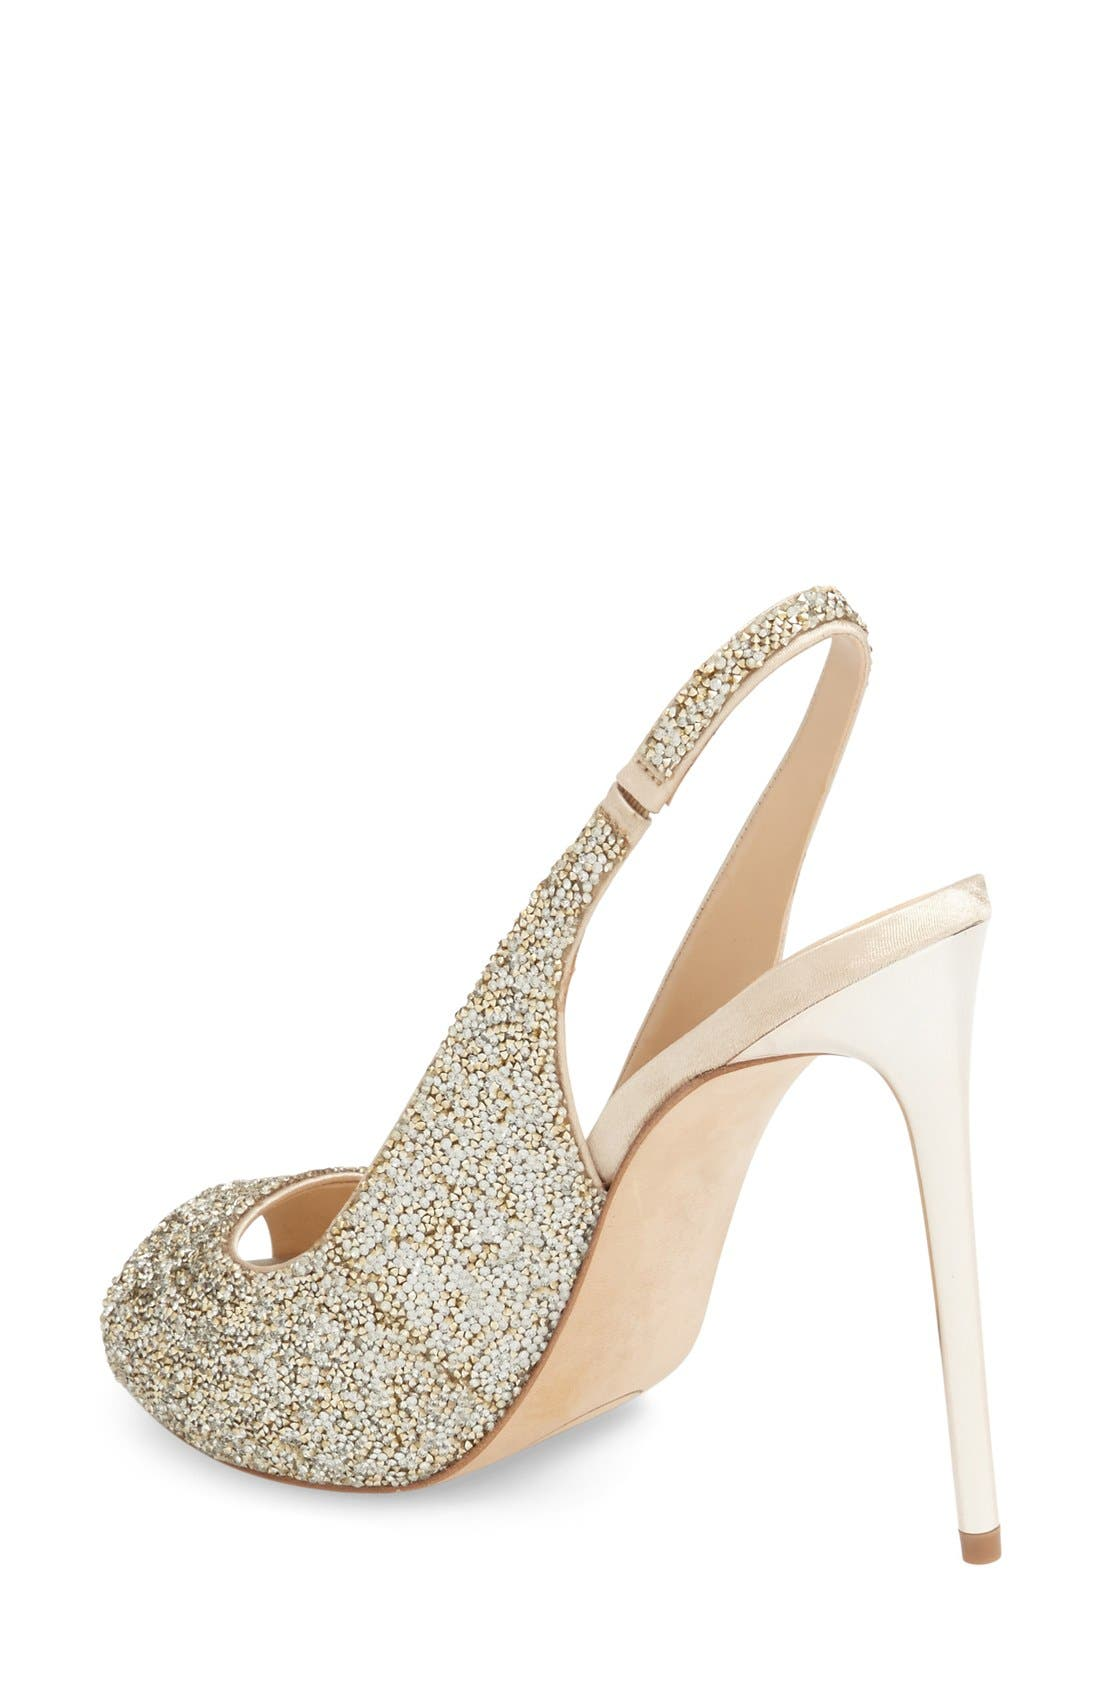 Alternate Image 2  - Imagine Vince Camuto 'Pavi' Slingback Peep Toe Pump (Women)